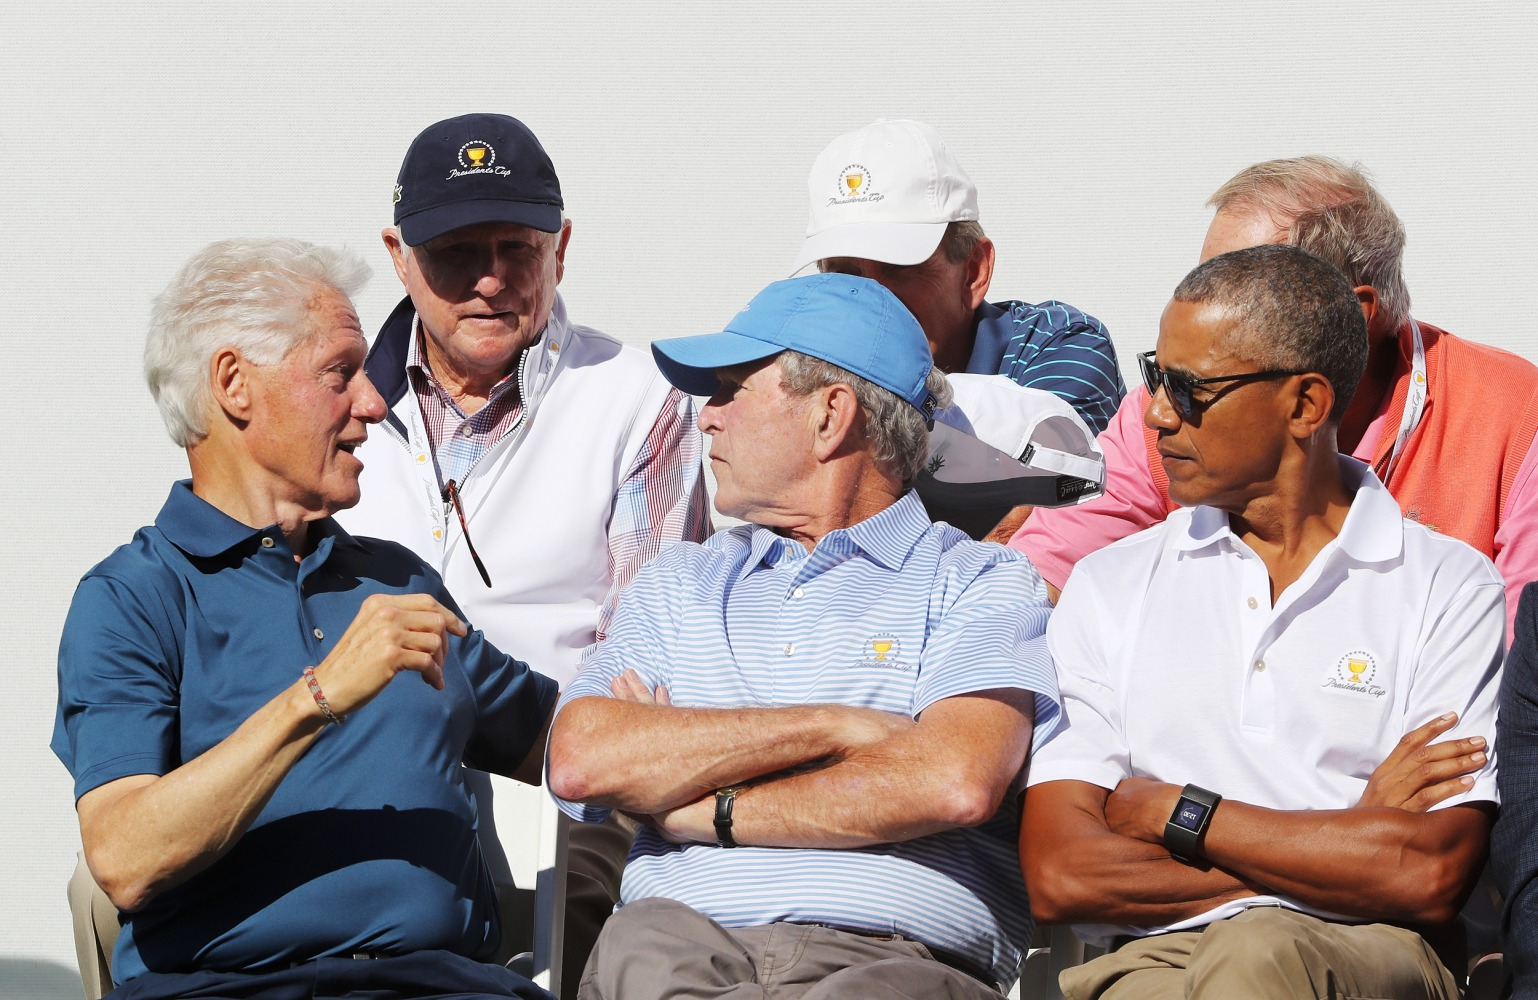 presidents cup - photo #22